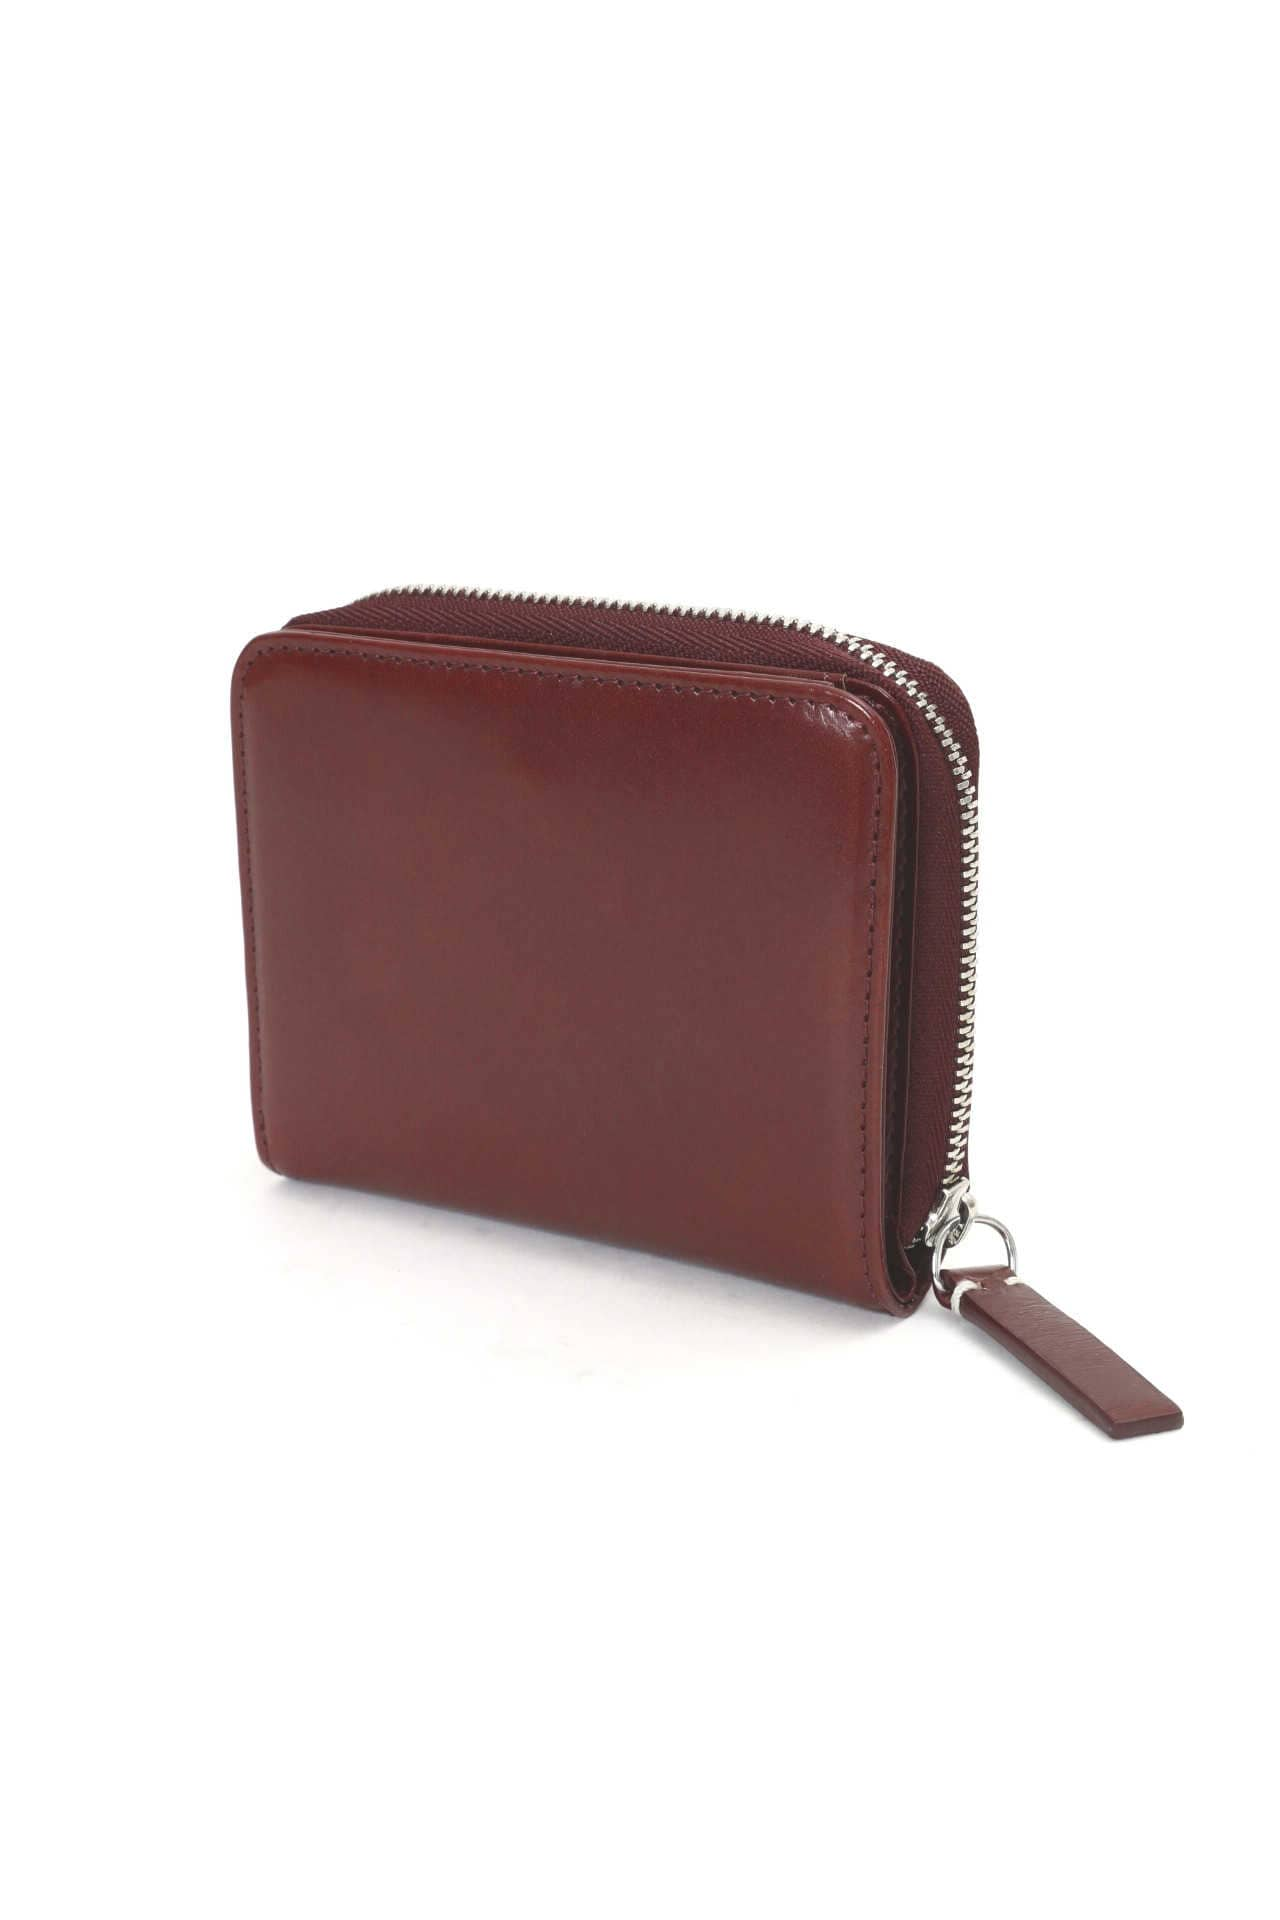 SMOOTH LEATHER WALLET2